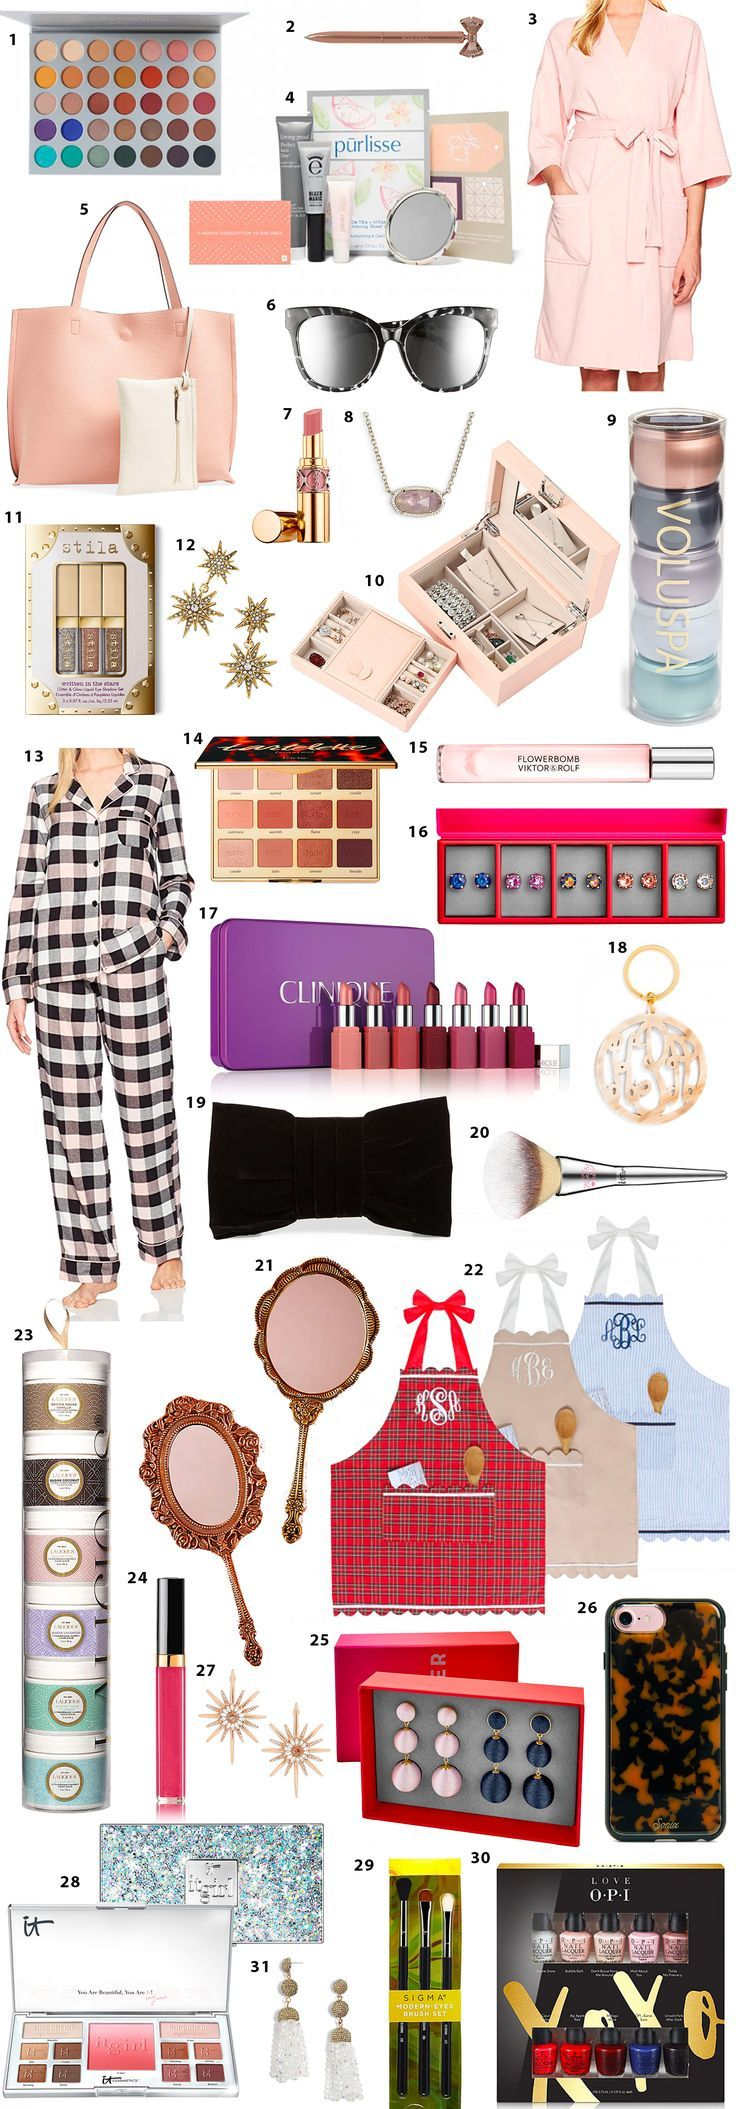 The best Christmas gift ideas for women under 50! (With